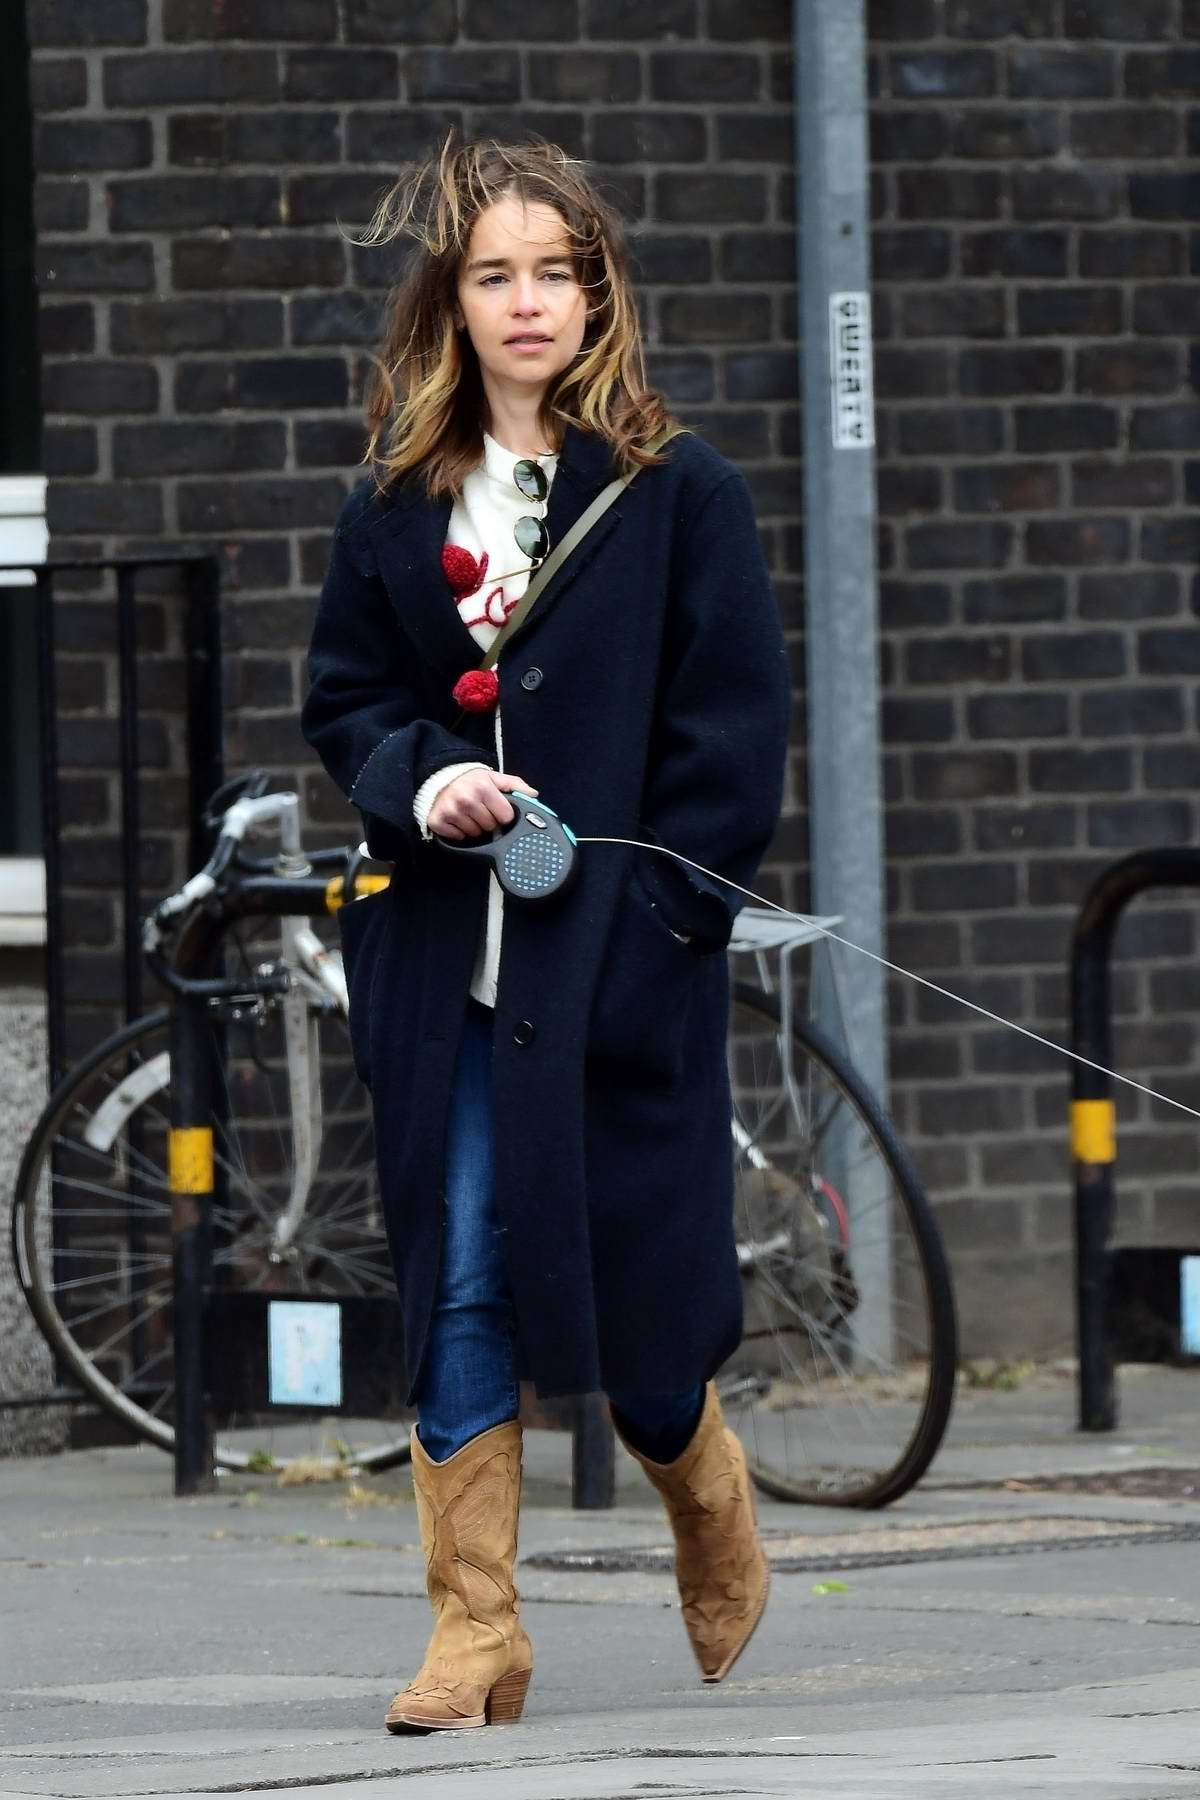 Emilia Clarke steps out for a walk with her dog at a local park in London, UK